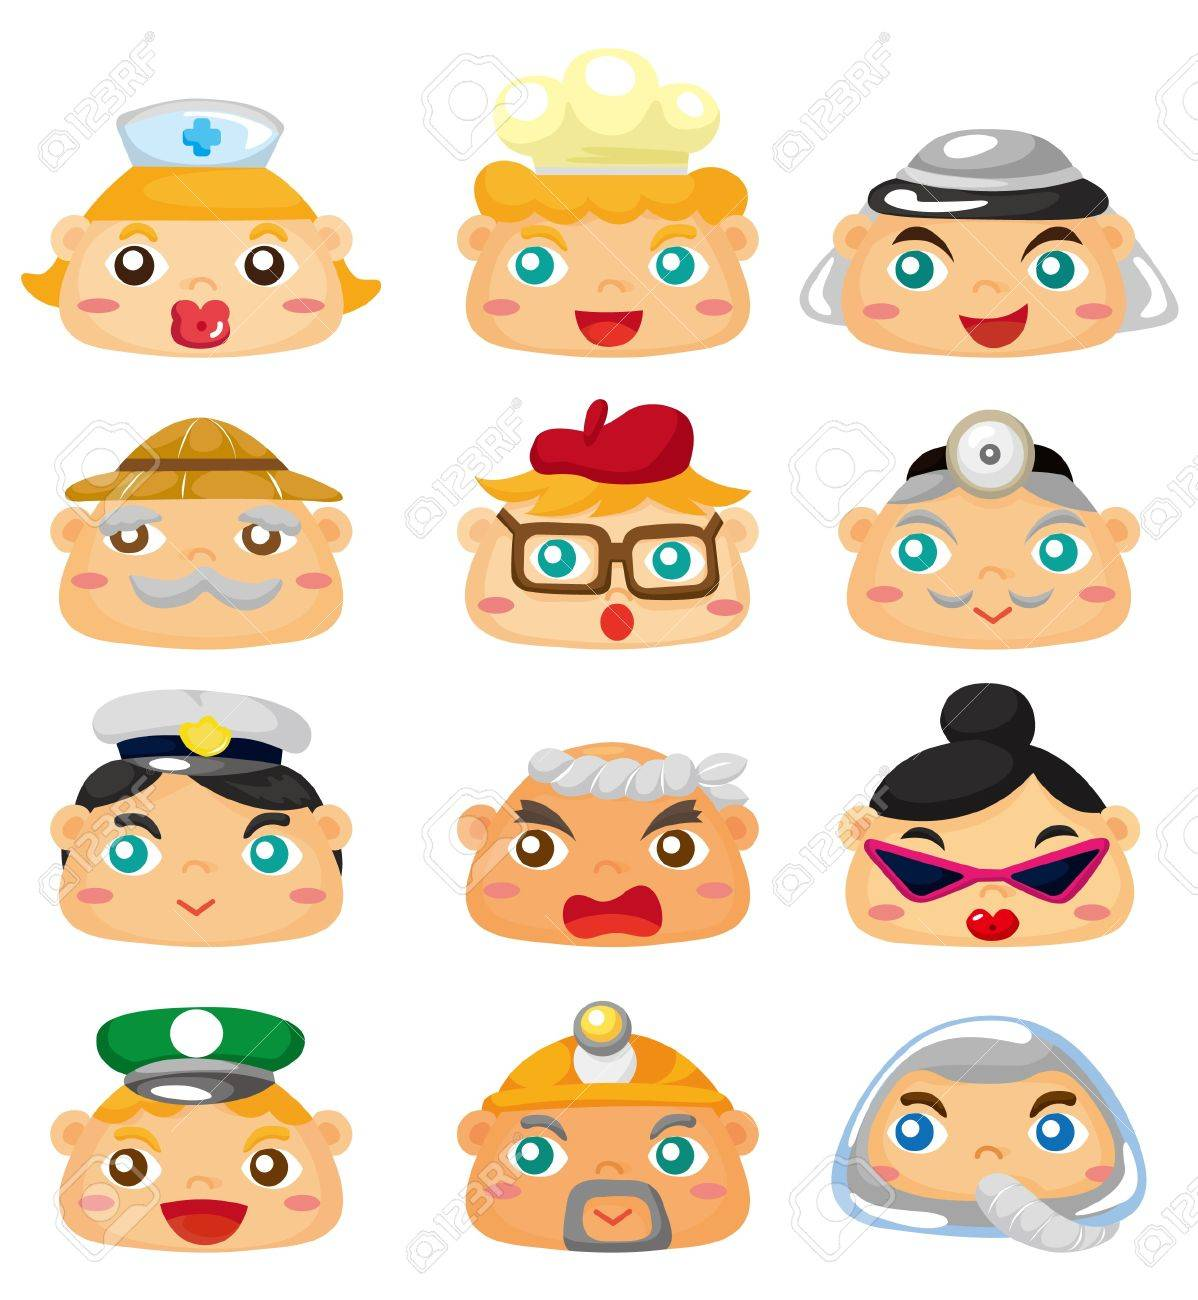 cartoon people face icon Stock Vector - 8984277